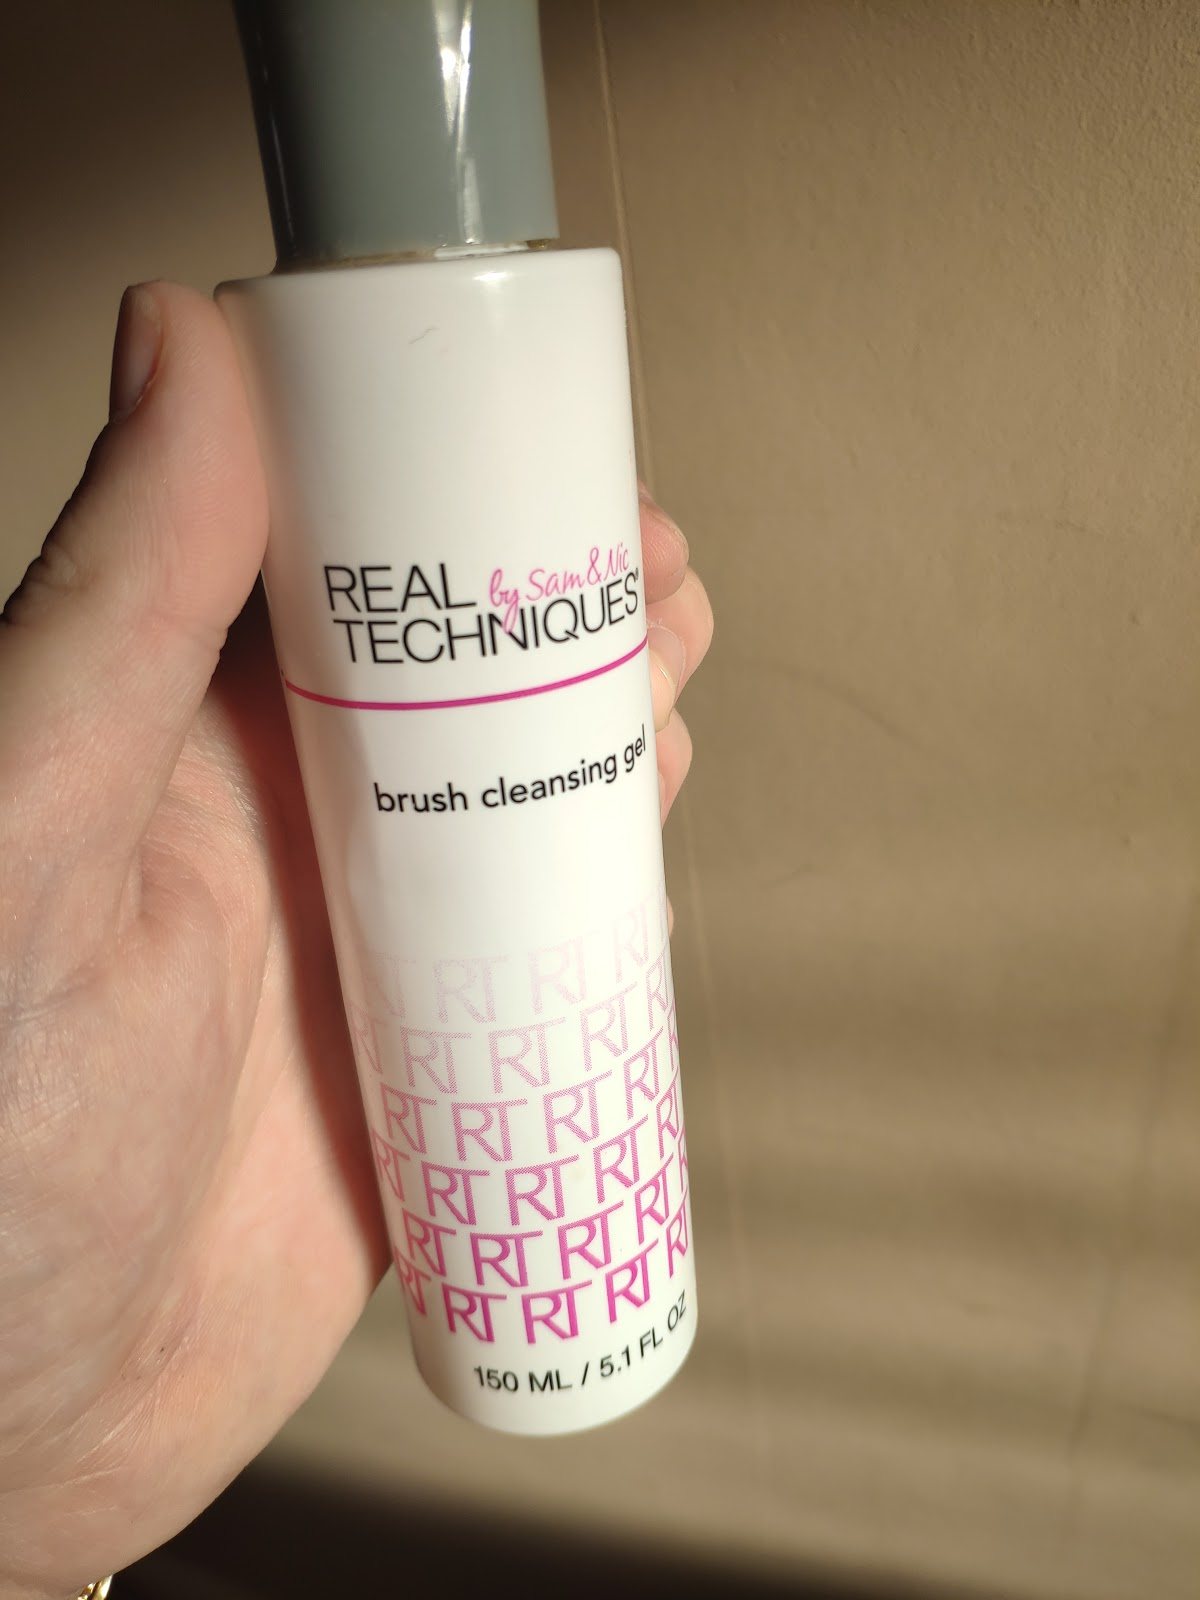 I've been using the Real Techniques Deep Cleansing Gel combined with the brushegg to get my brushes super clean for a while now.